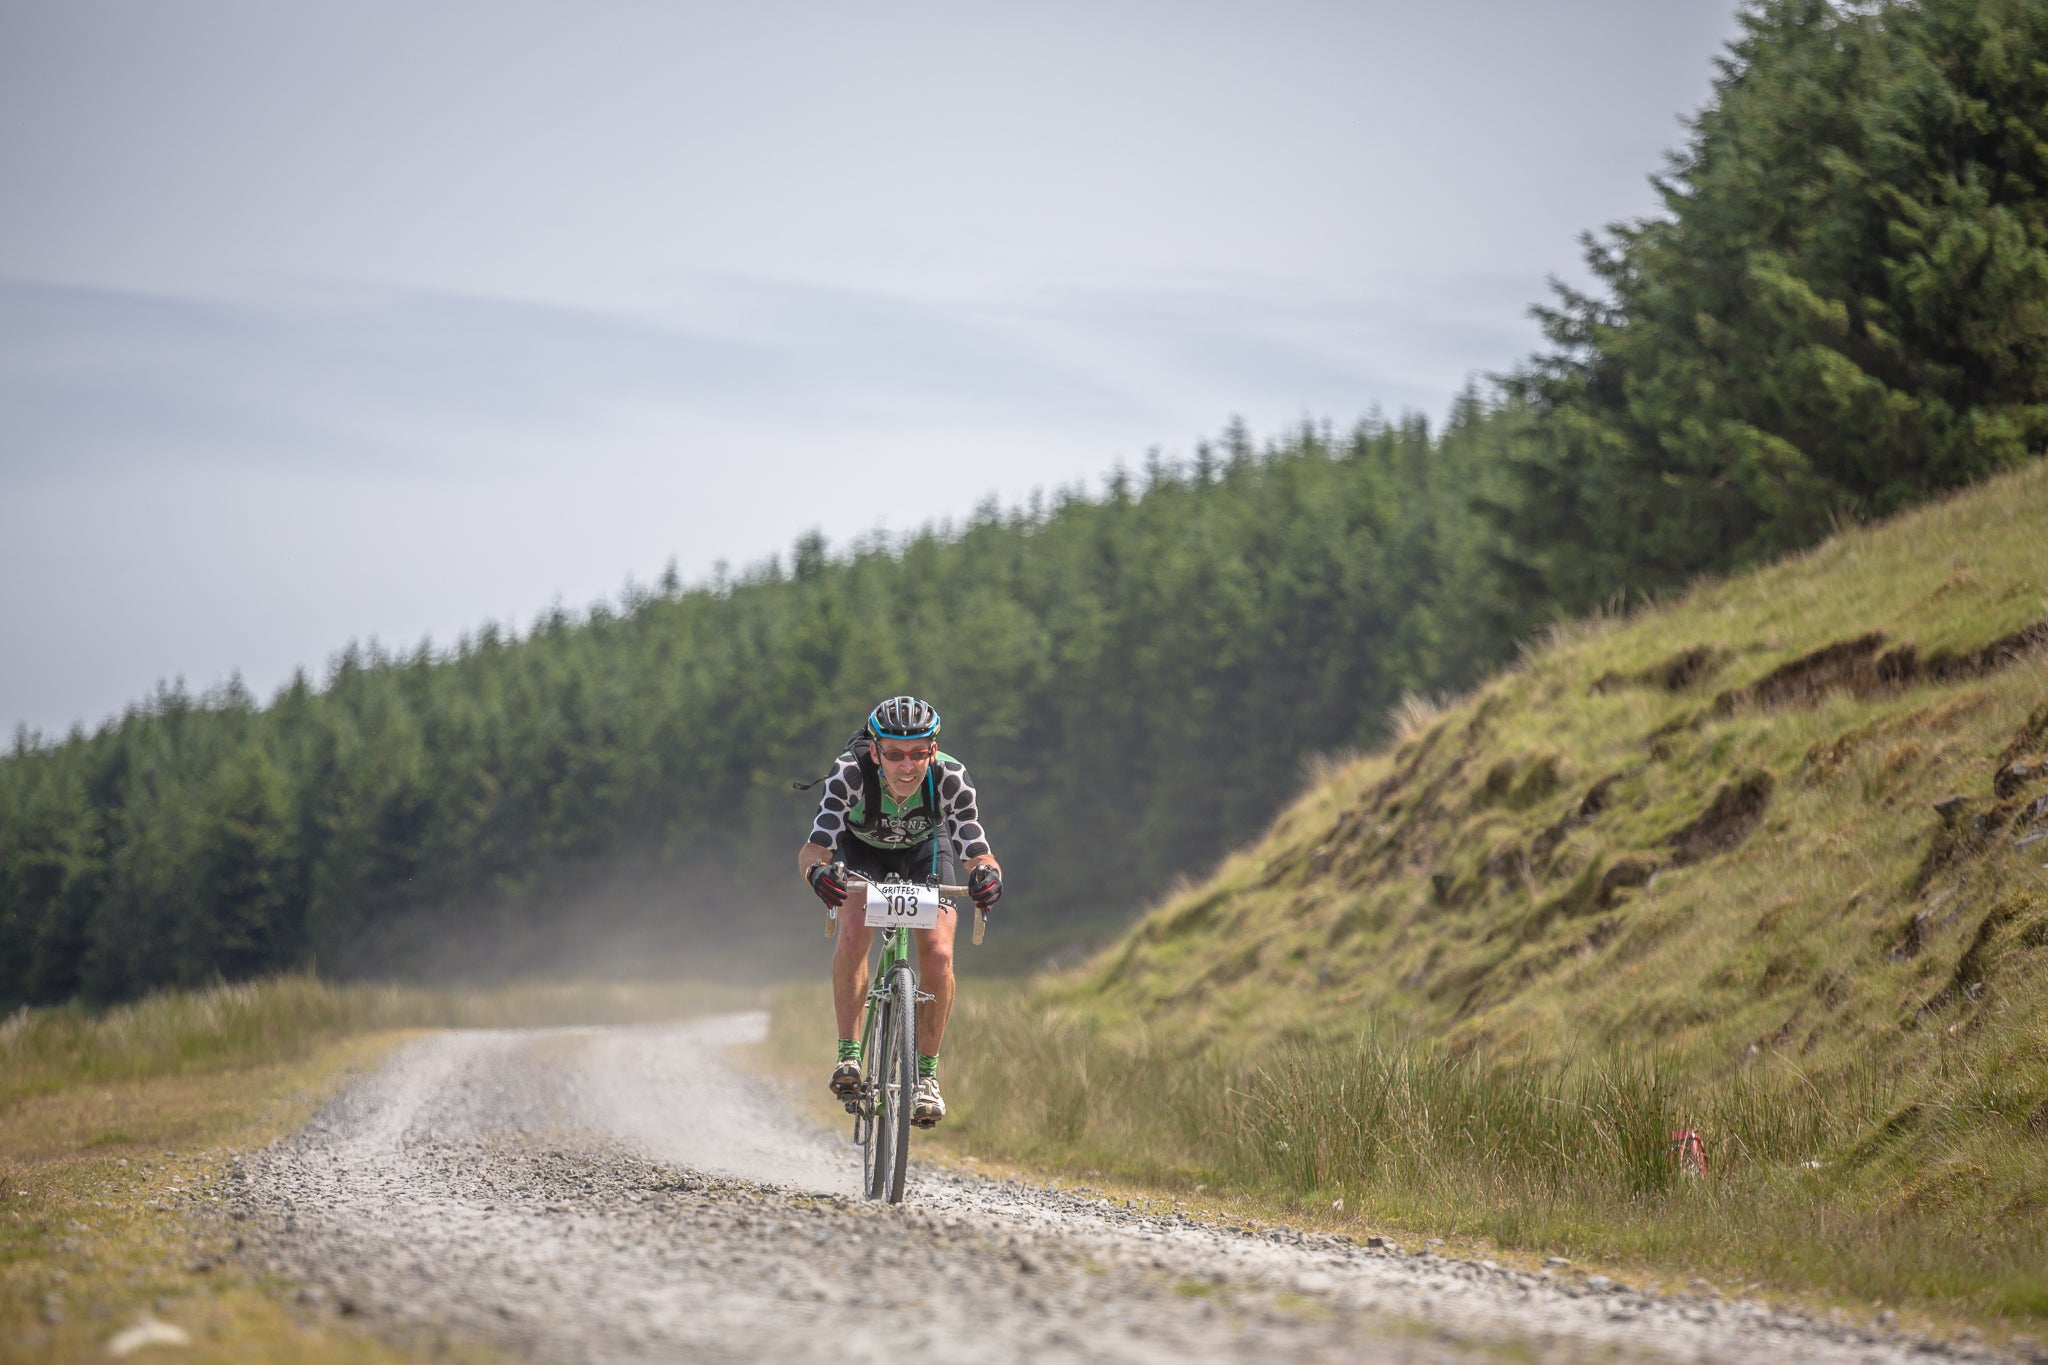 Gritfest and gravel bikes